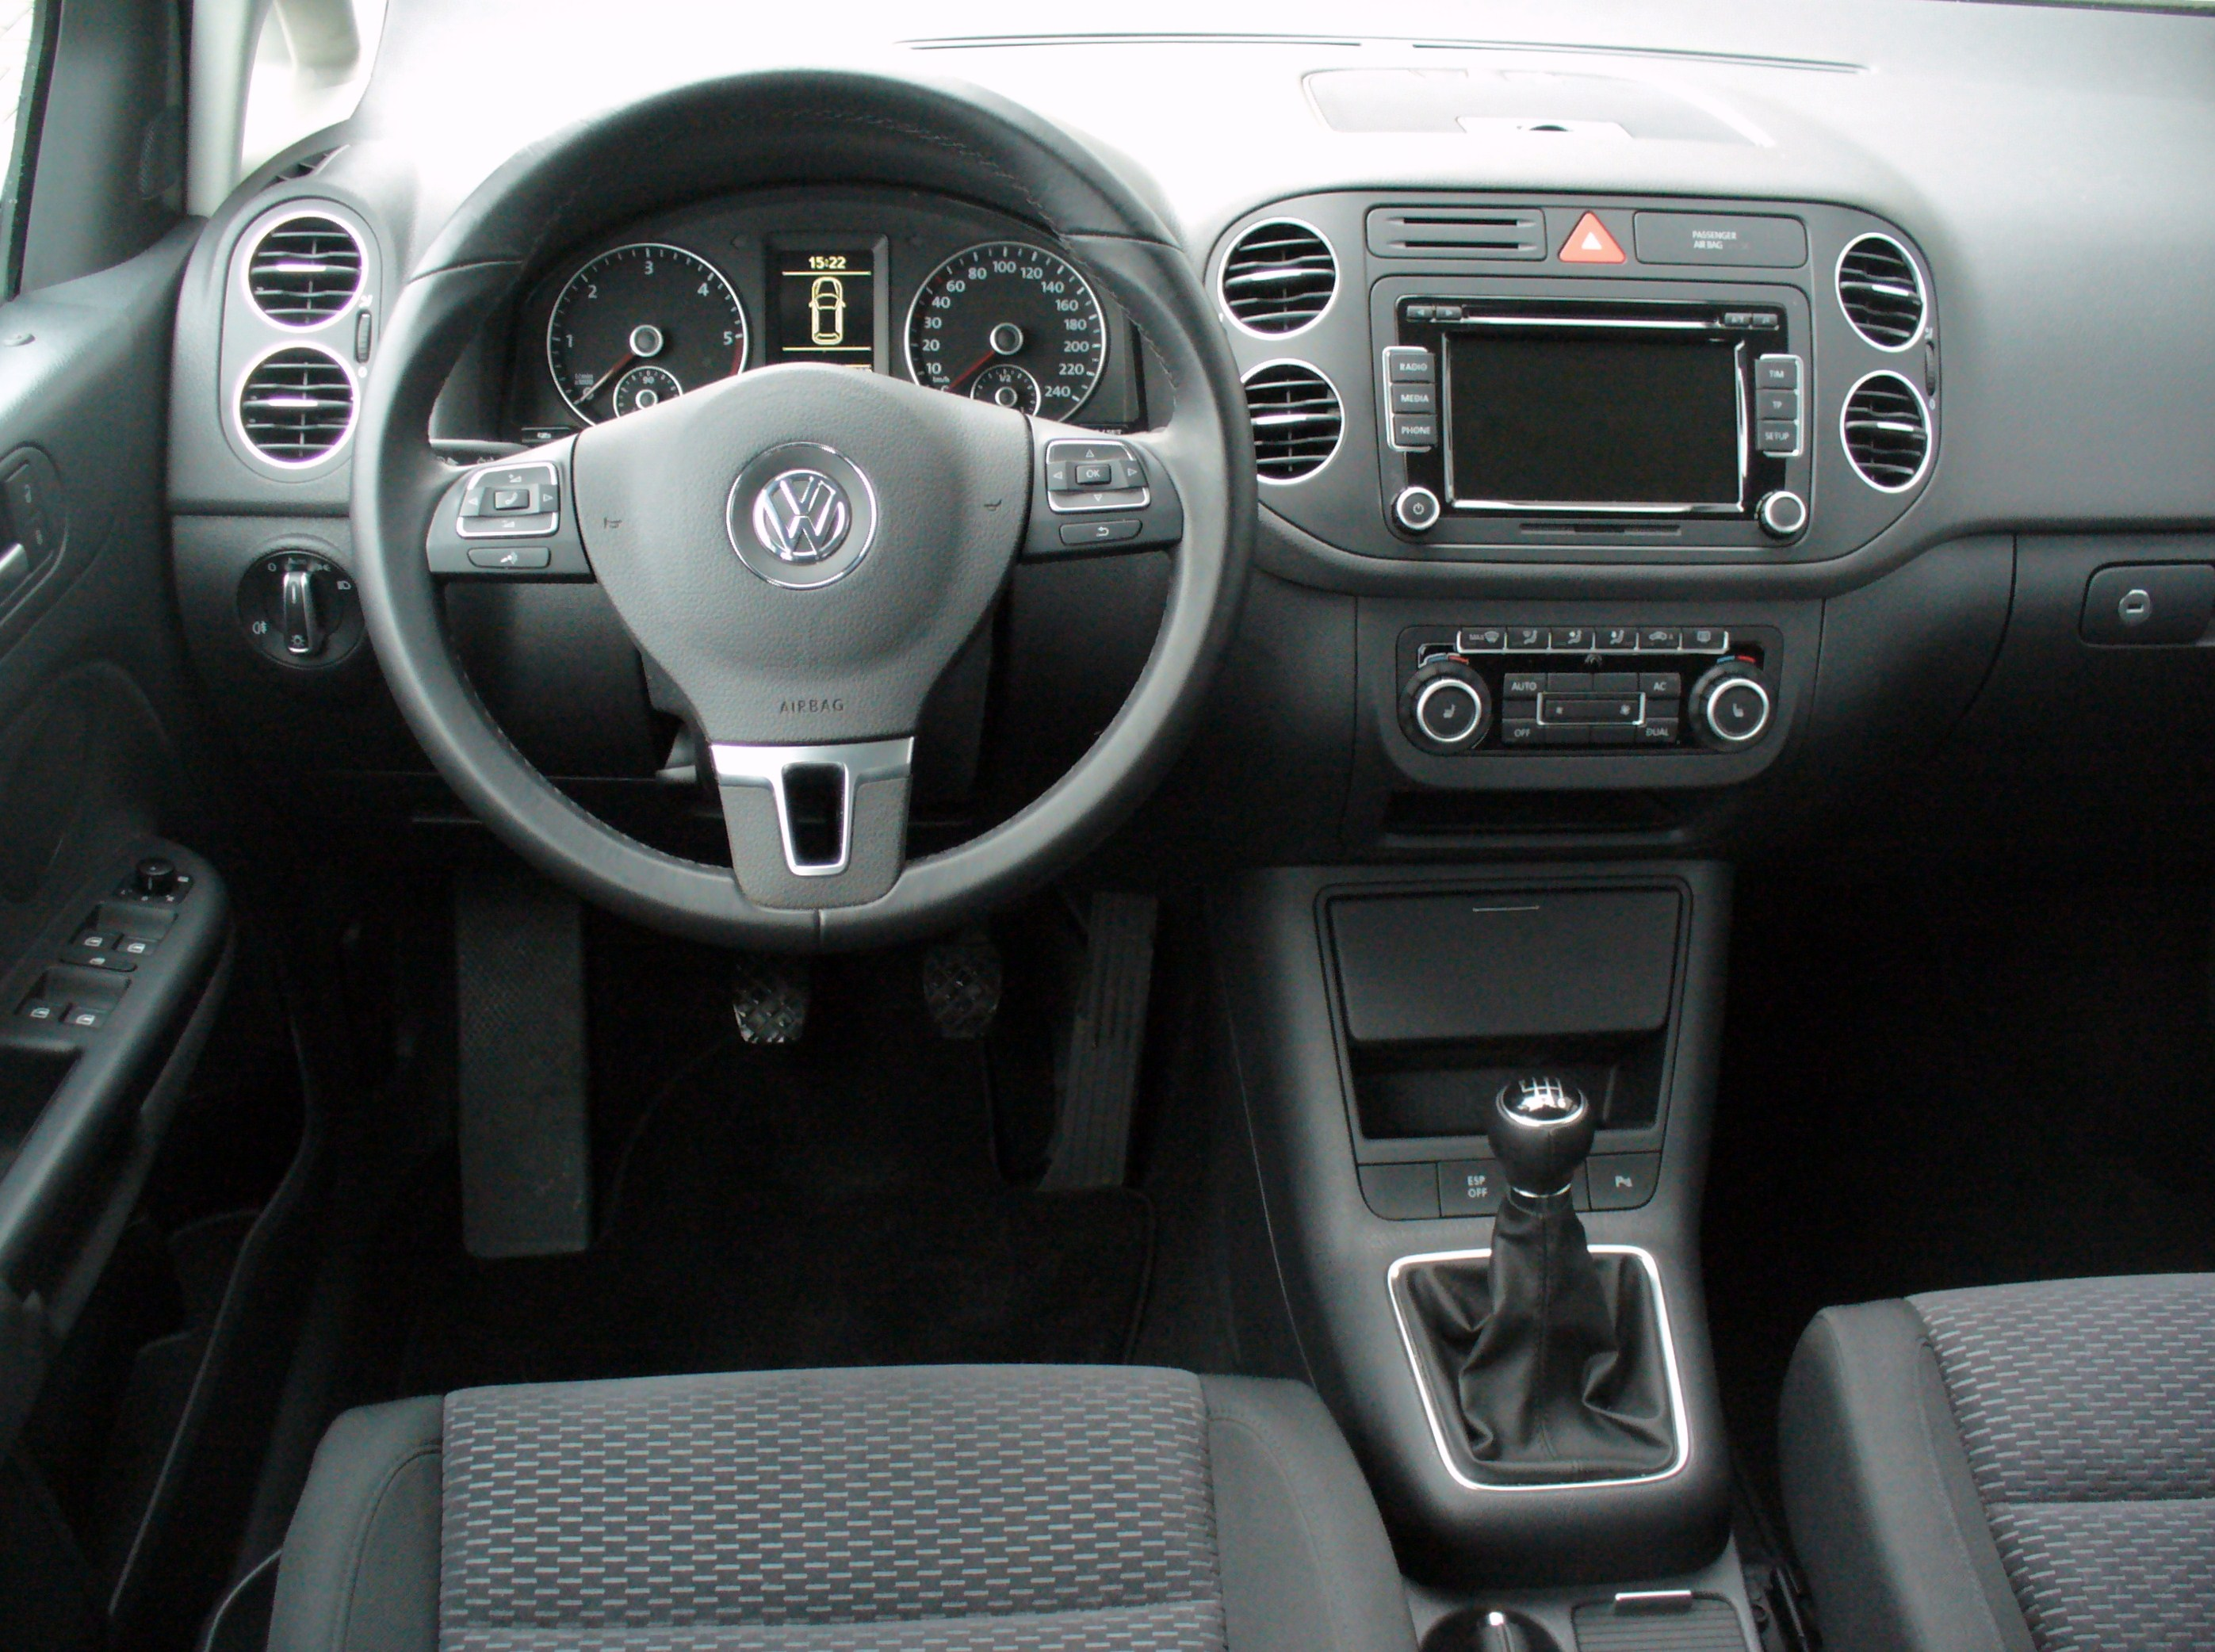 file vw golf plus 2 0 tdi comfortline reflexsilber interieur jpg wikimedia commons. Black Bedroom Furniture Sets. Home Design Ideas